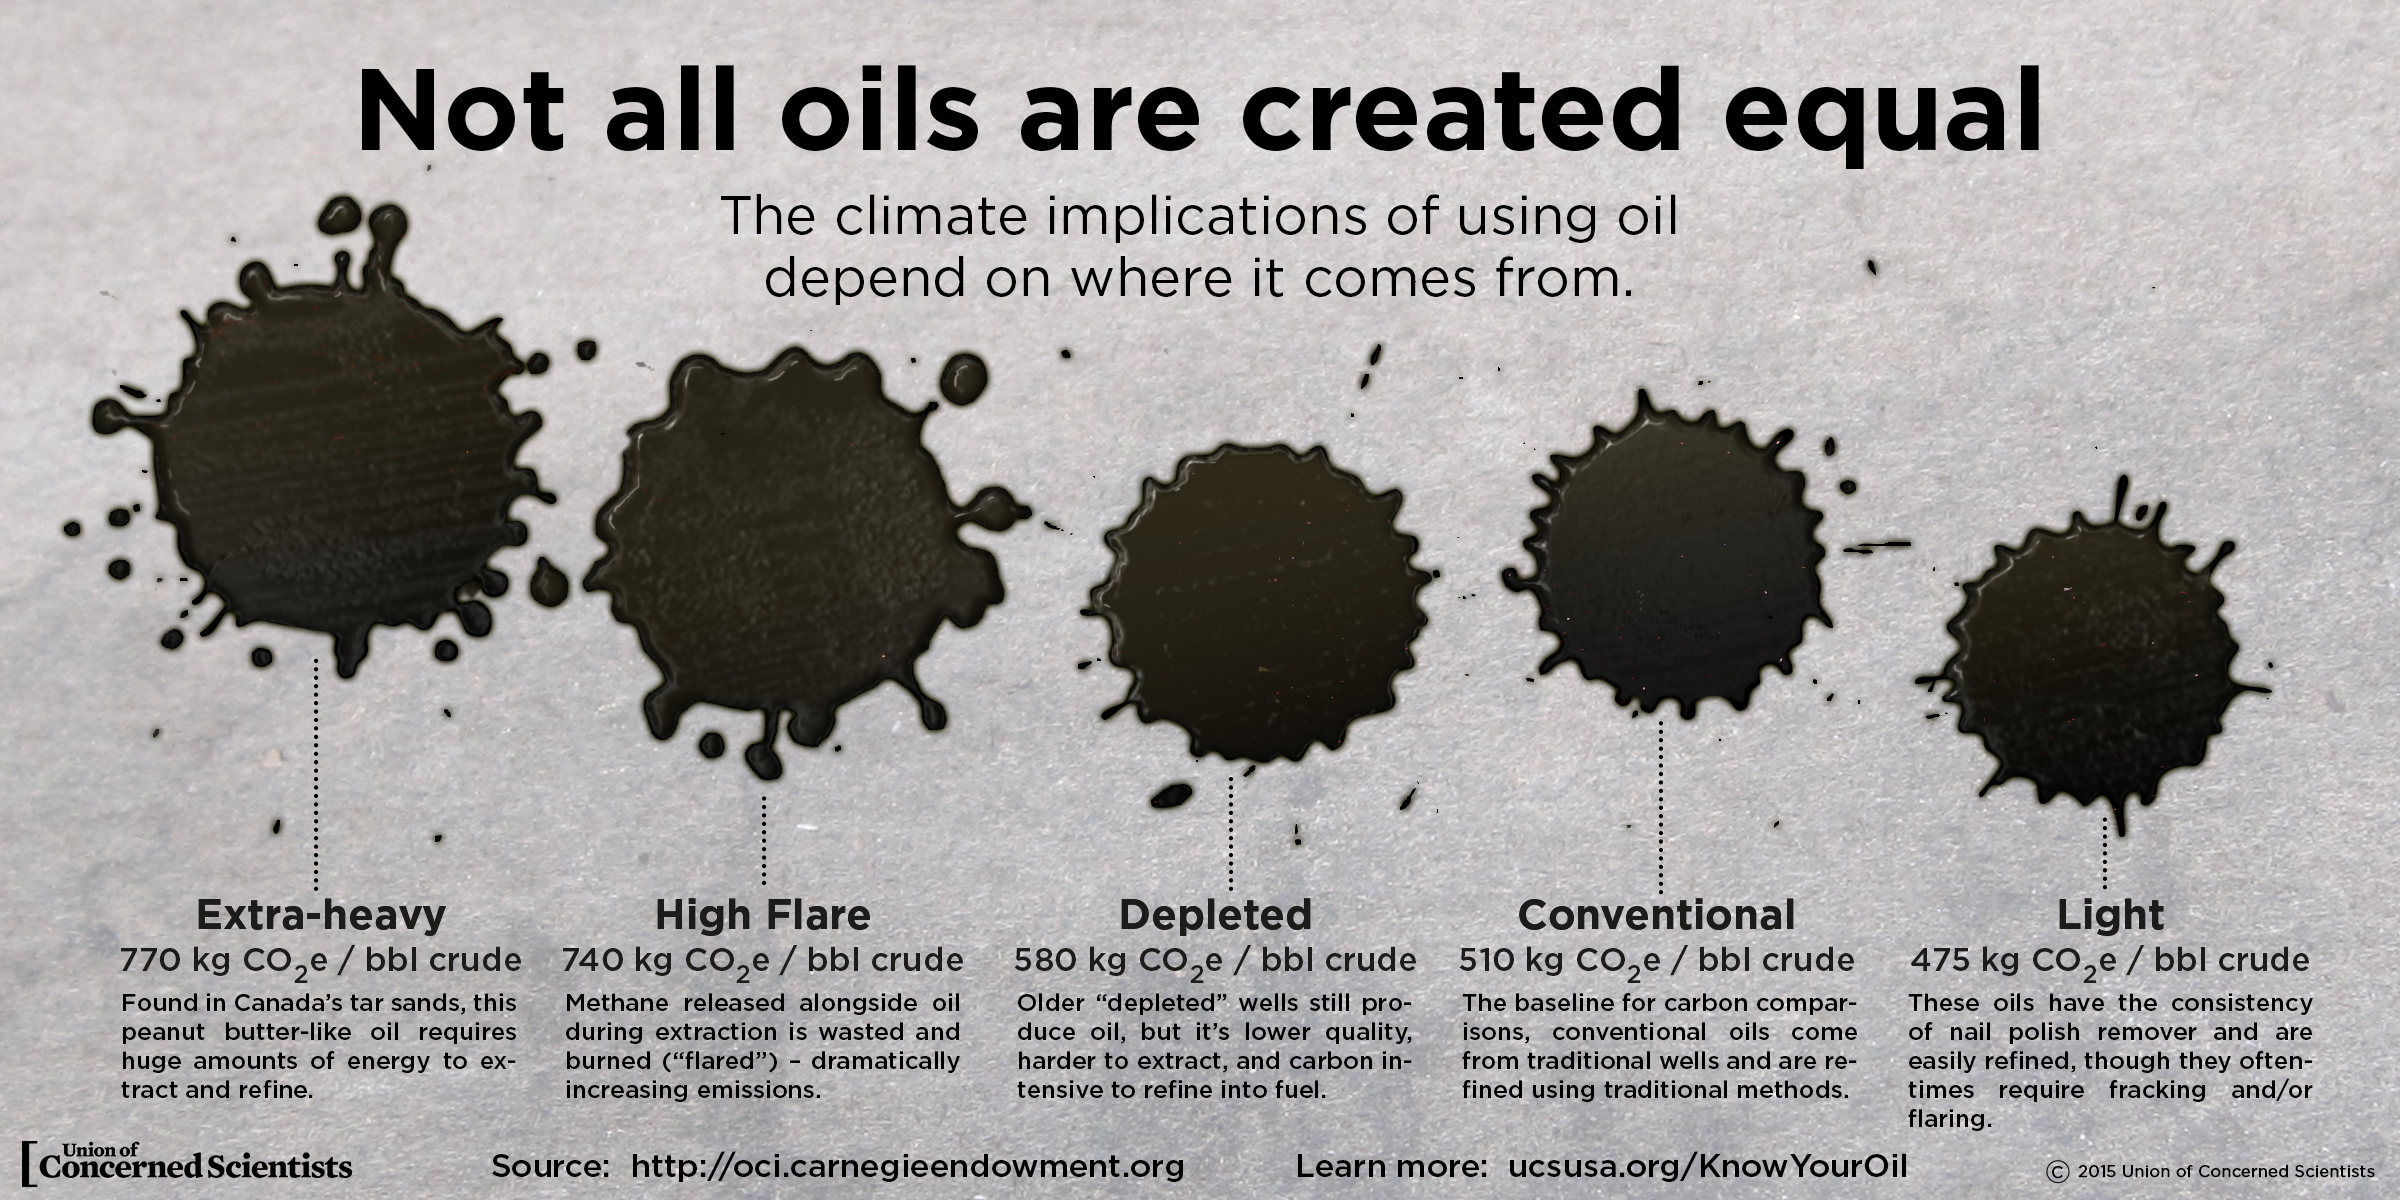 The climate implications of oil depend on where it comes from.